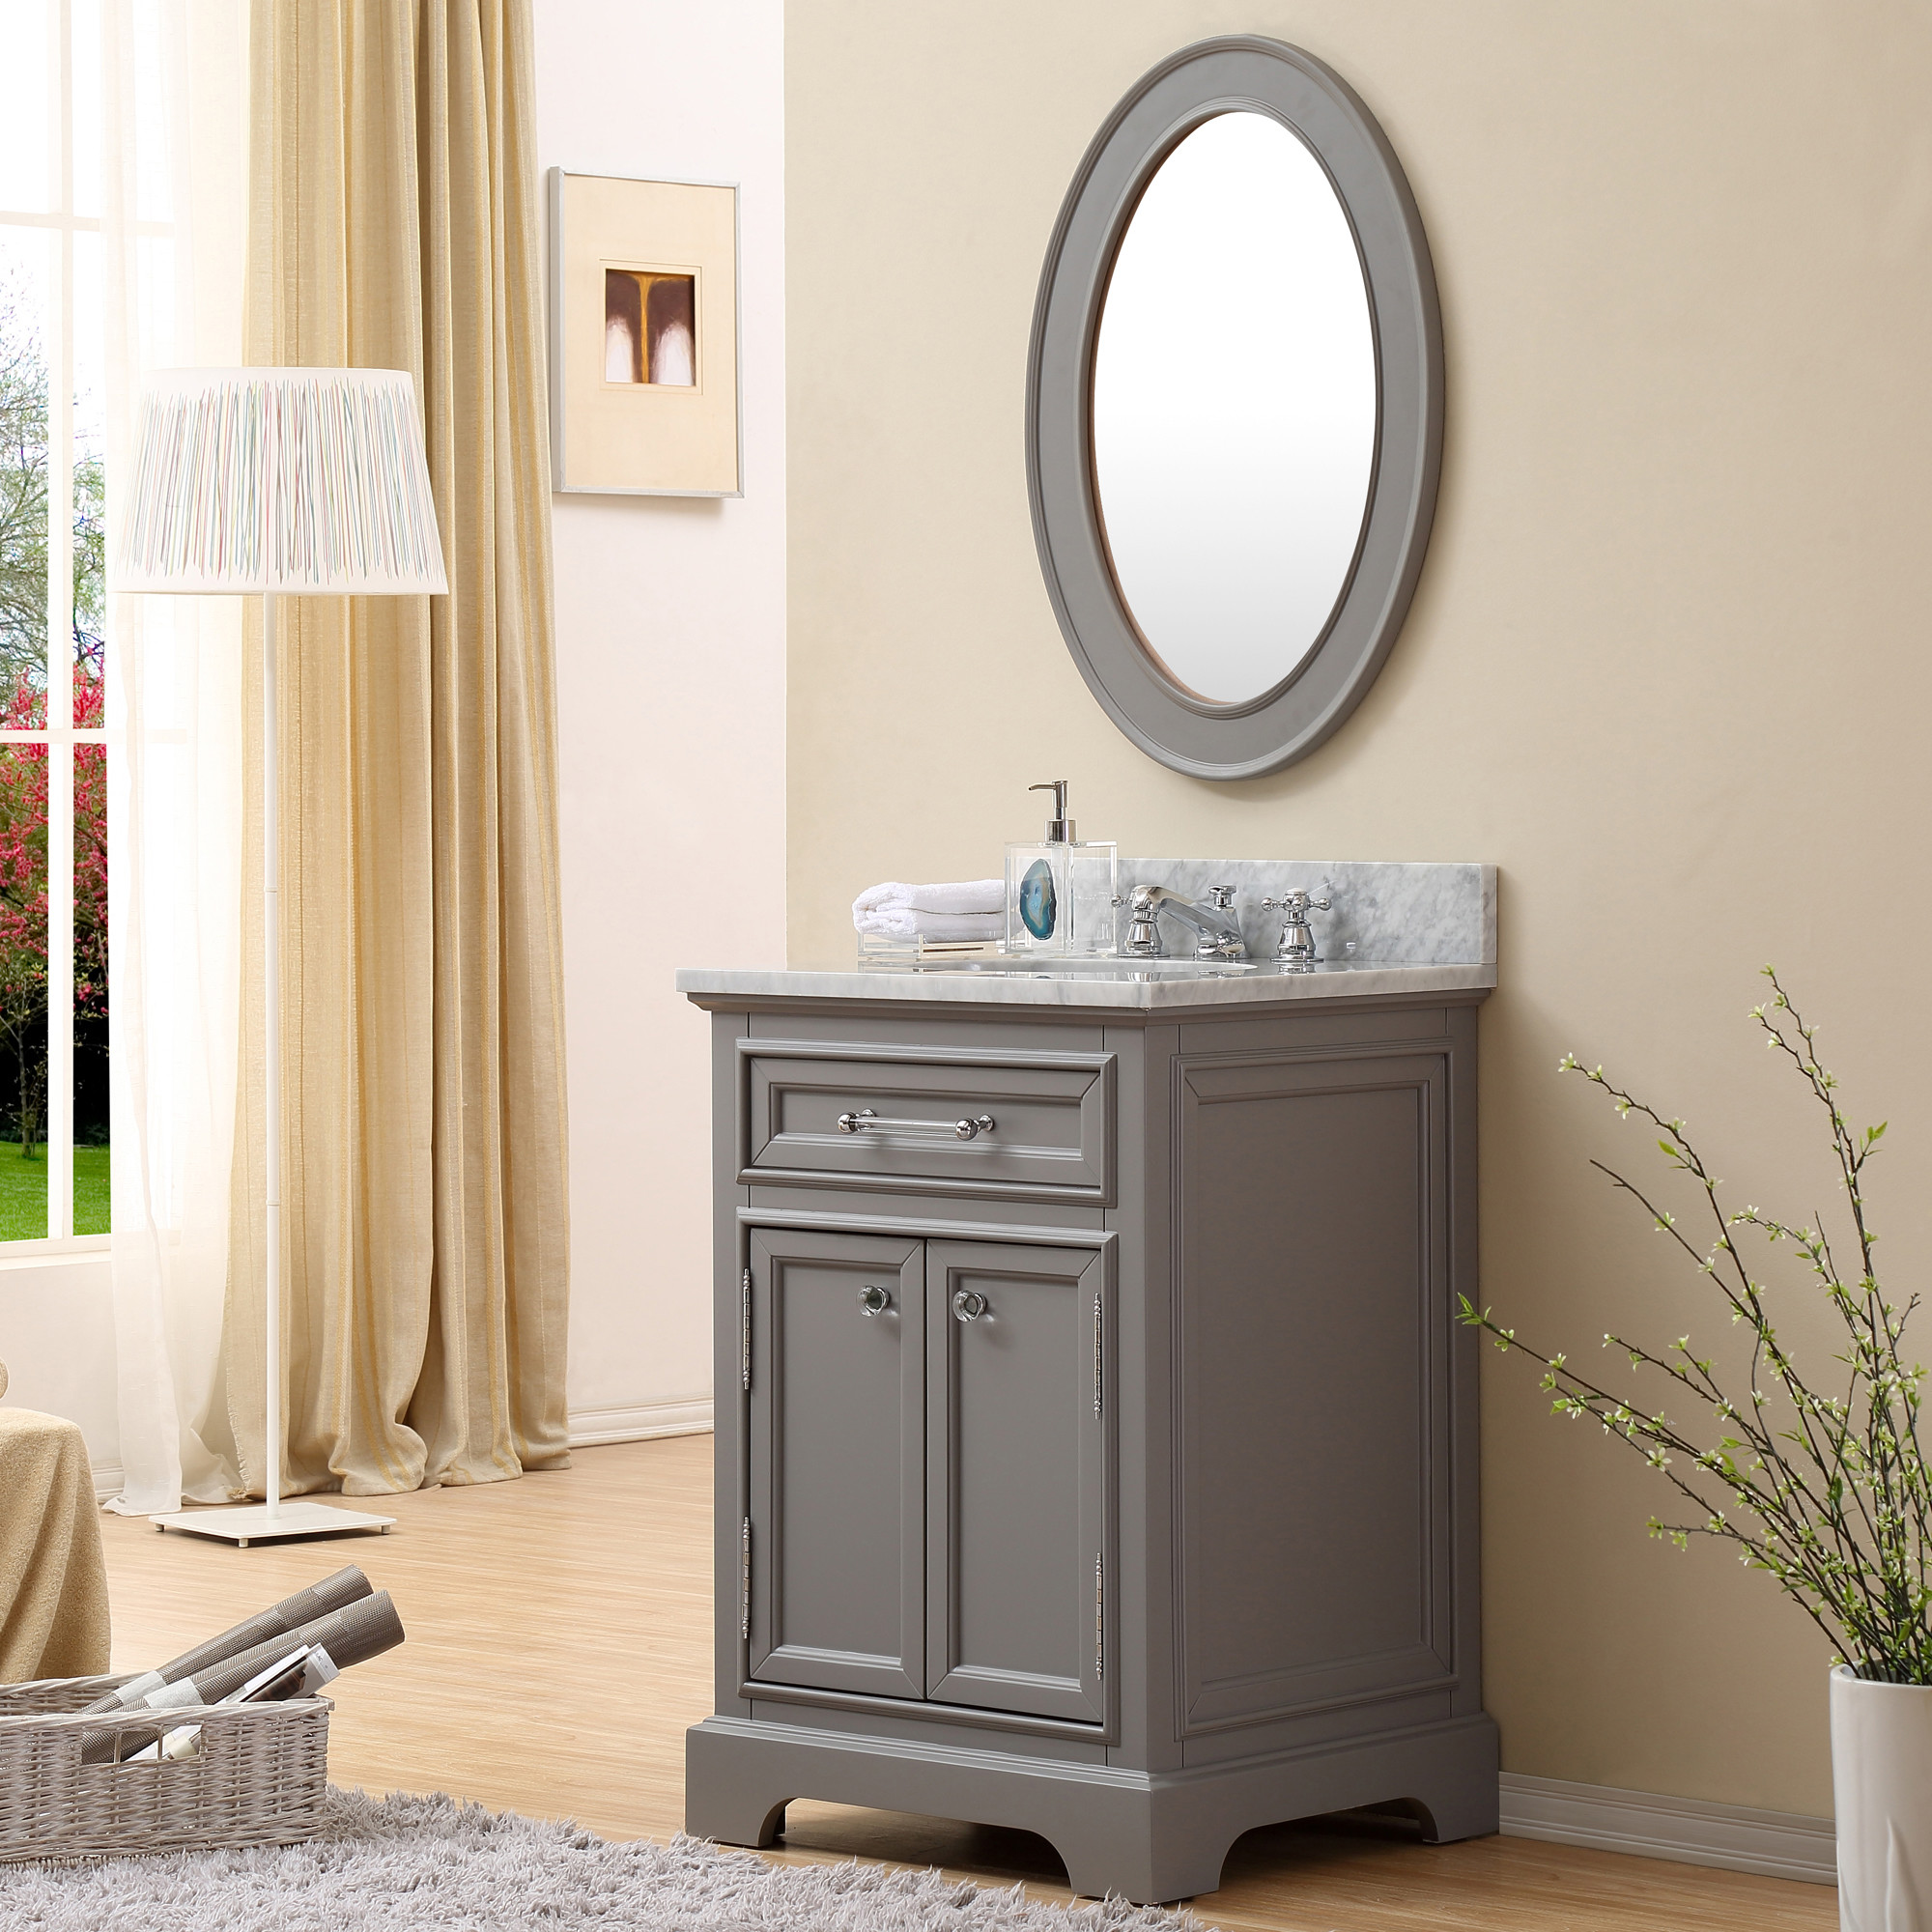 Carenton Inch Traditional Bathroom Vanity Gray Finish - 24 inch bathroom vanity gray